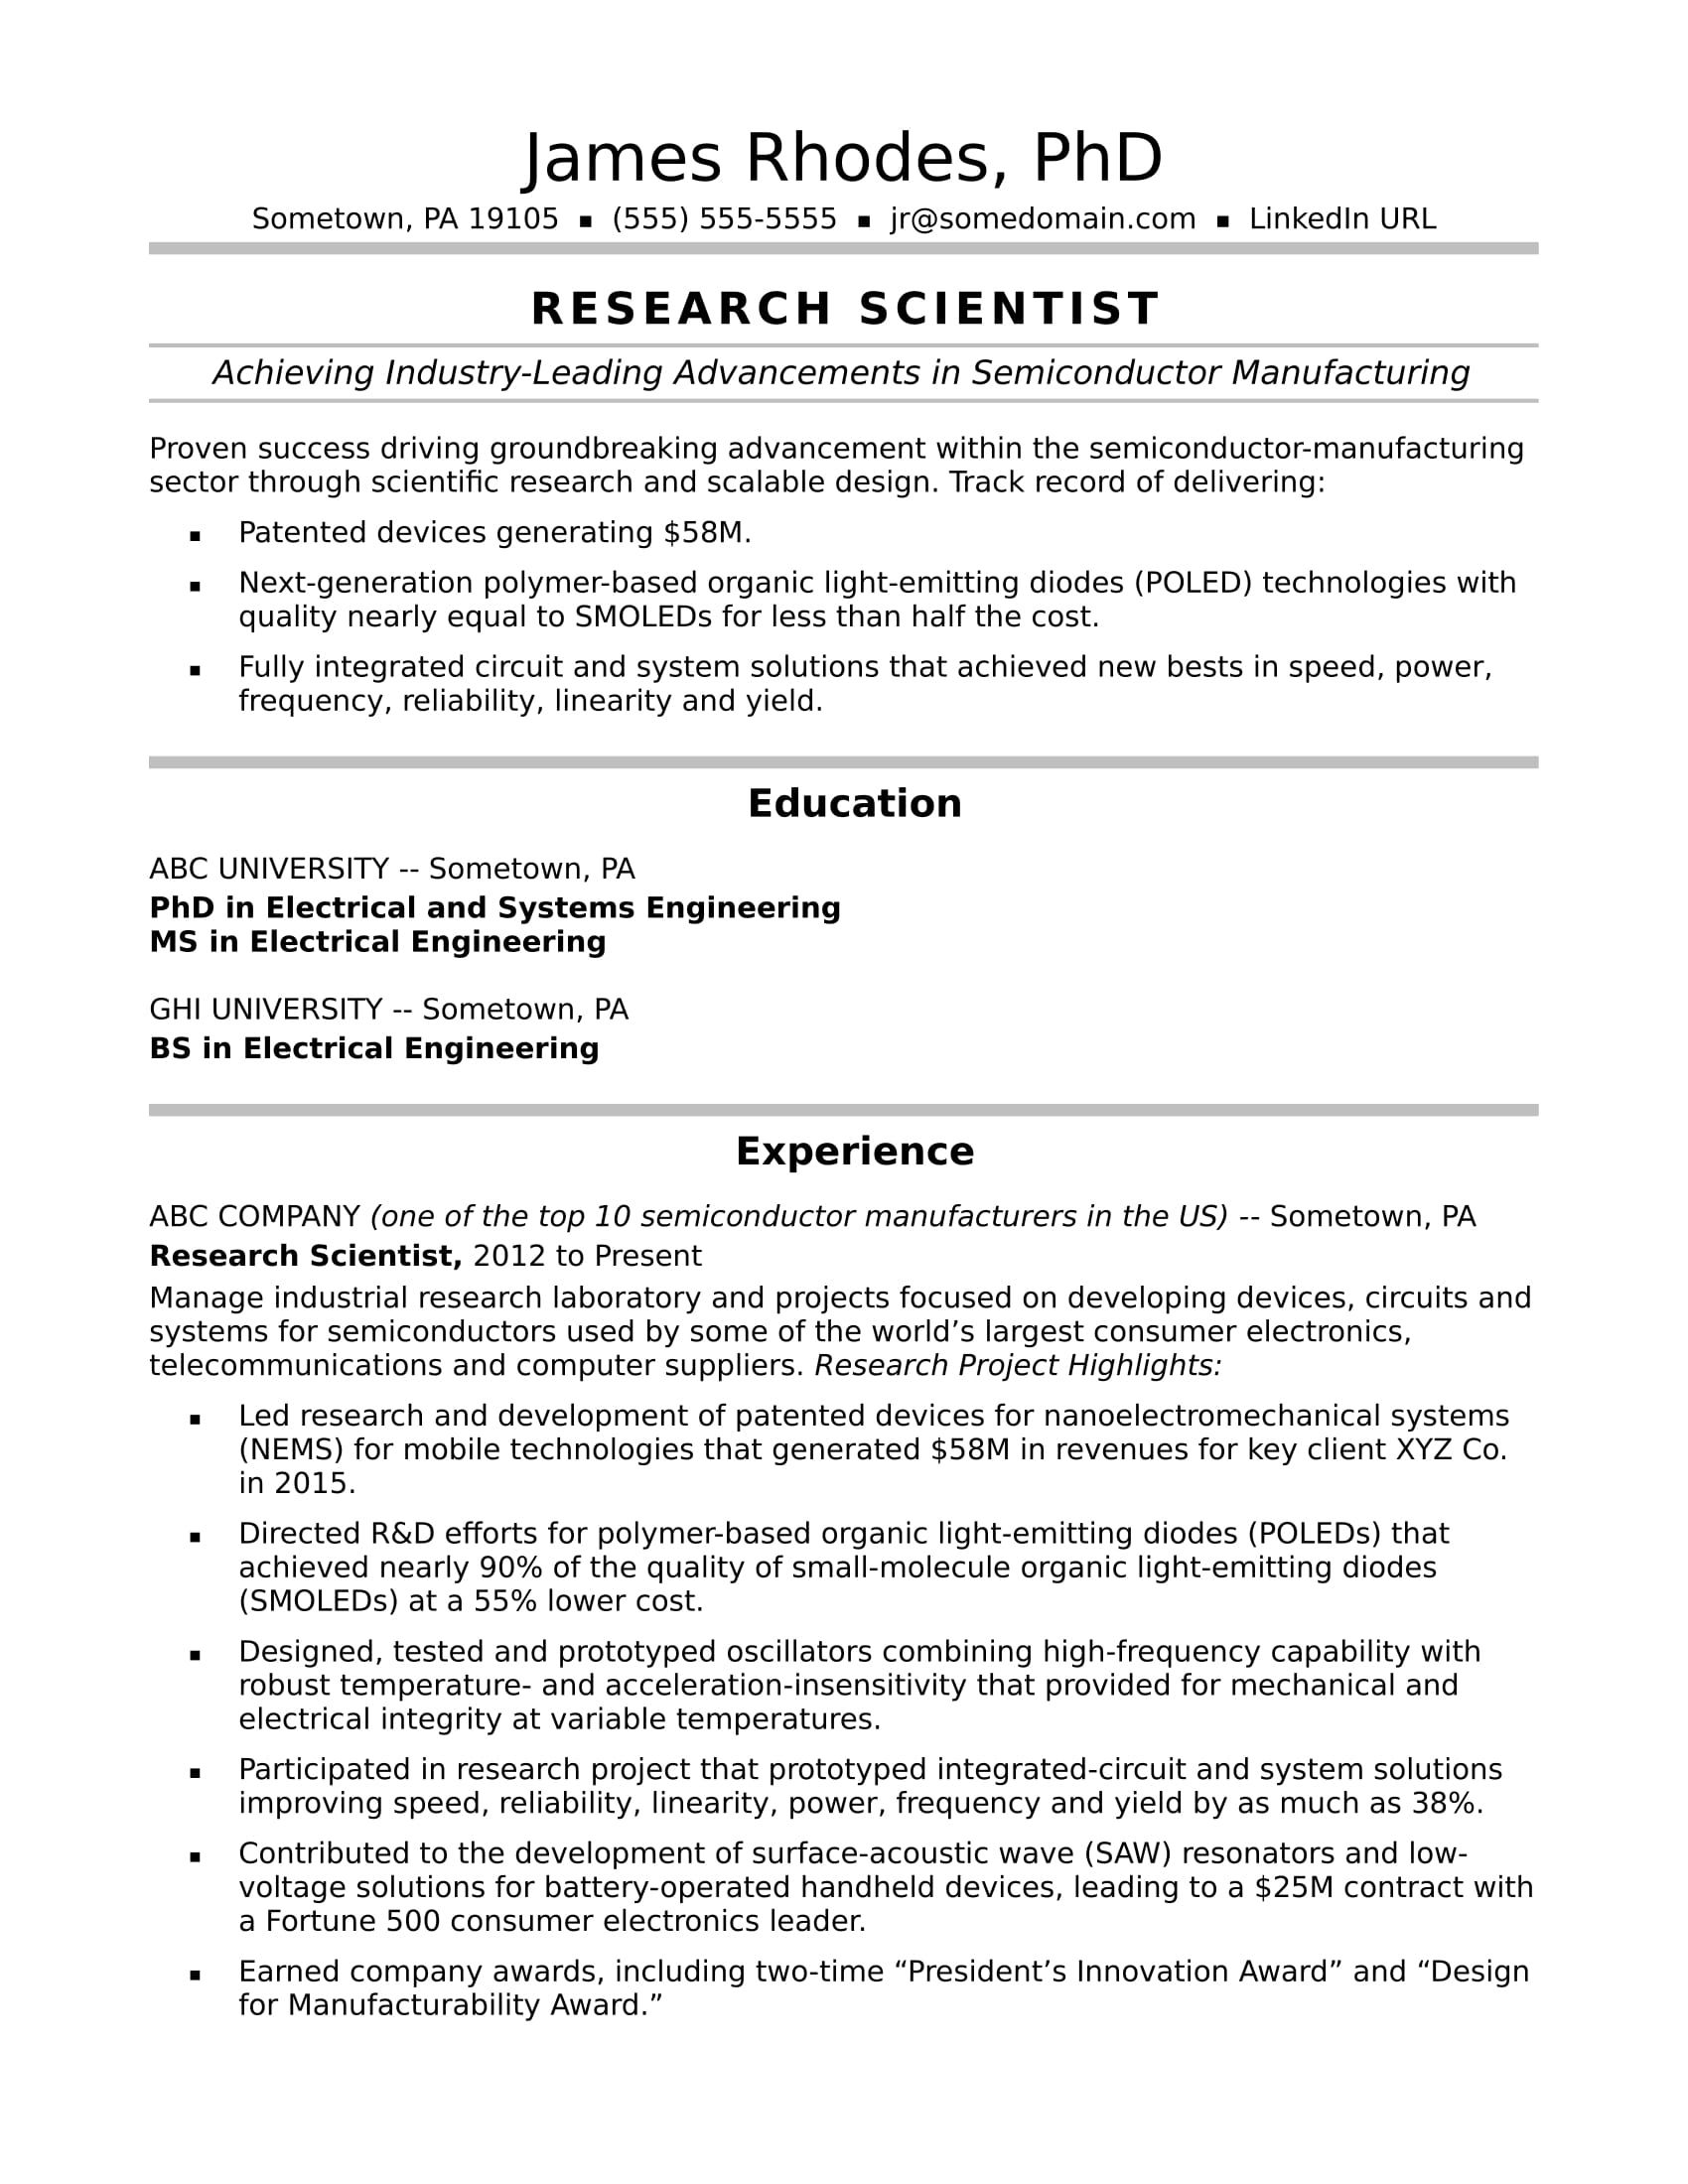 cv template research scientist